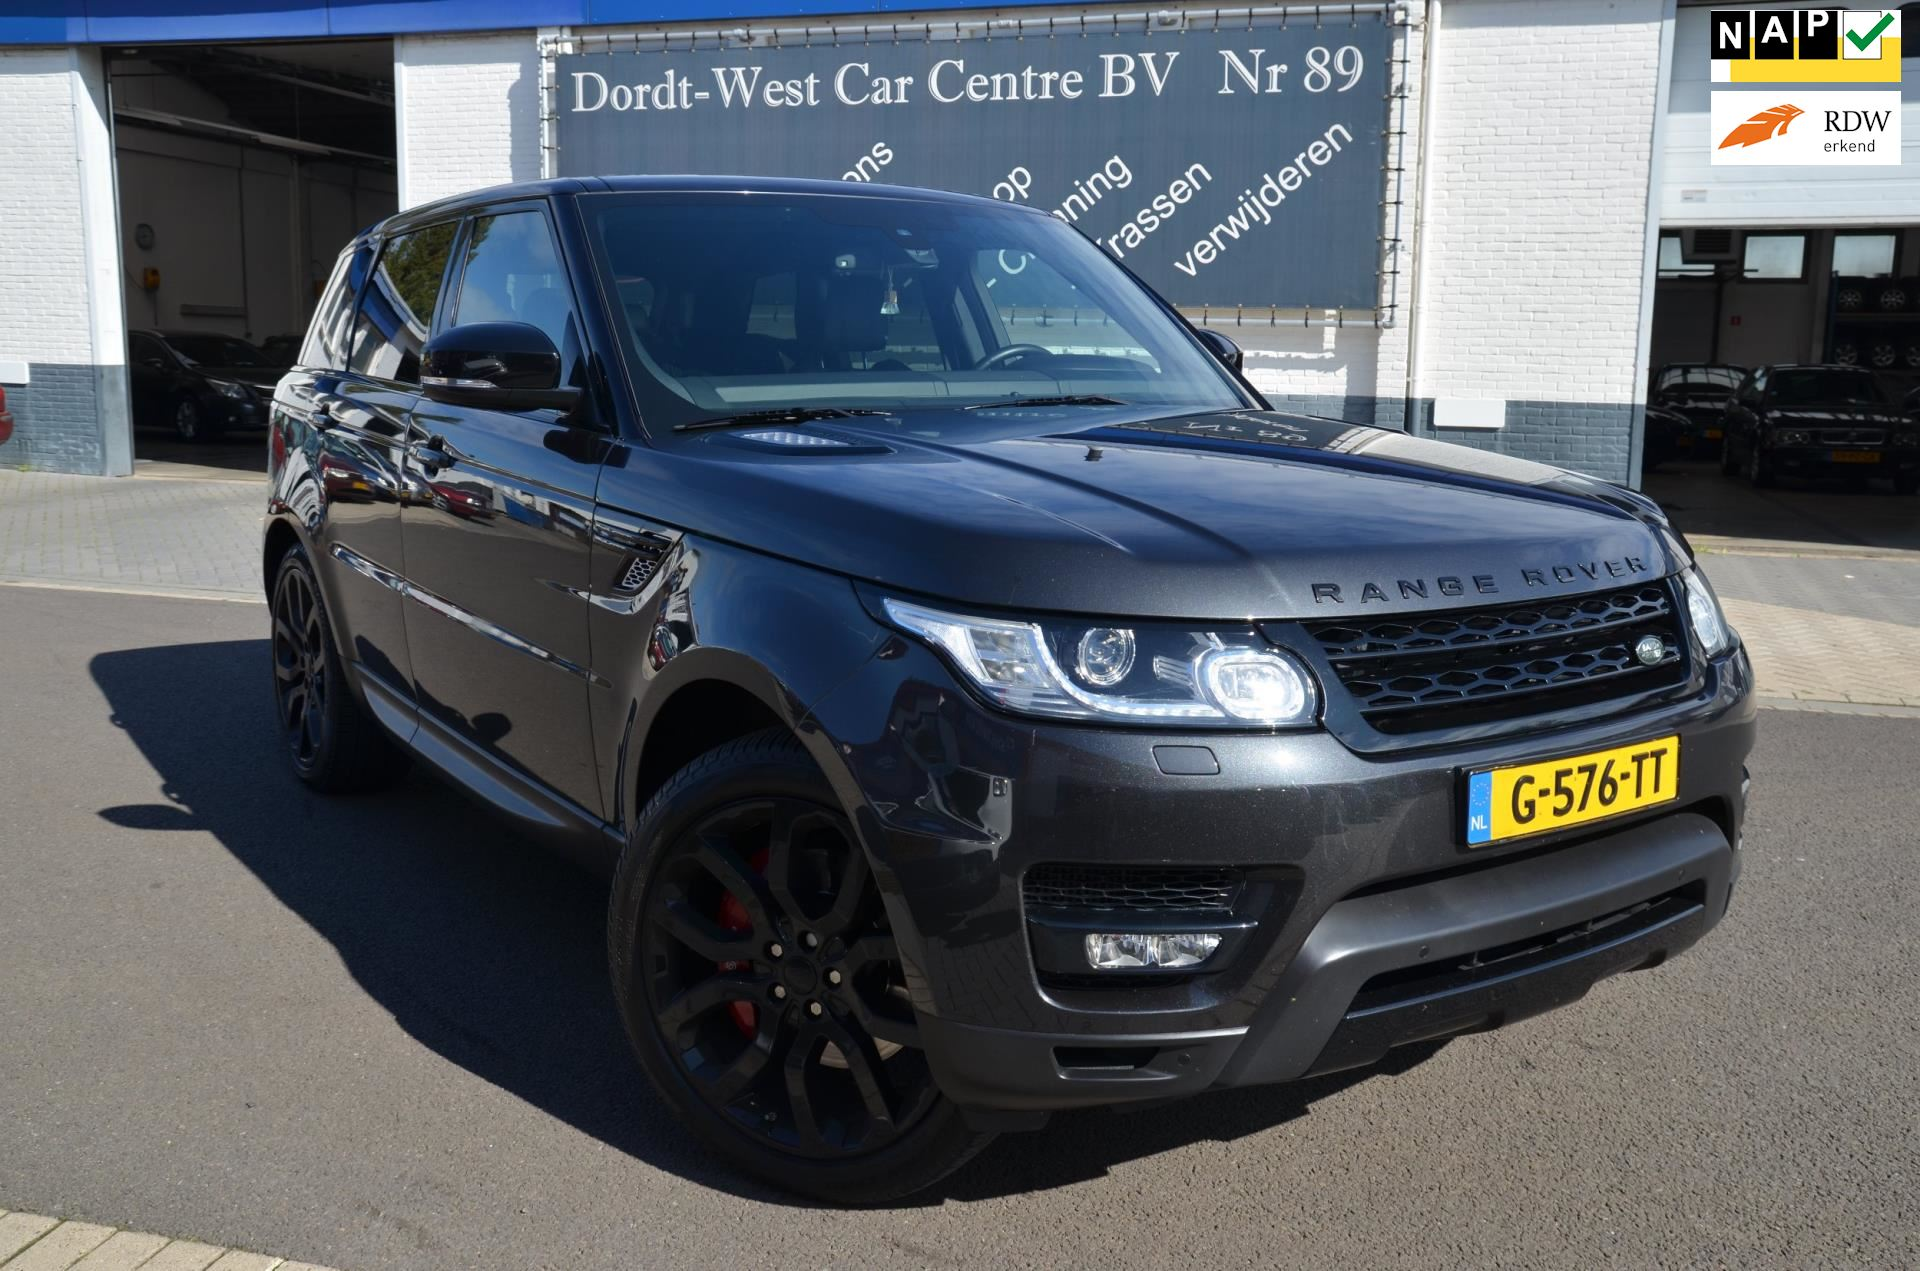 Land Rover Range Rover Sport occasion - Dordt-West Car Centre BV